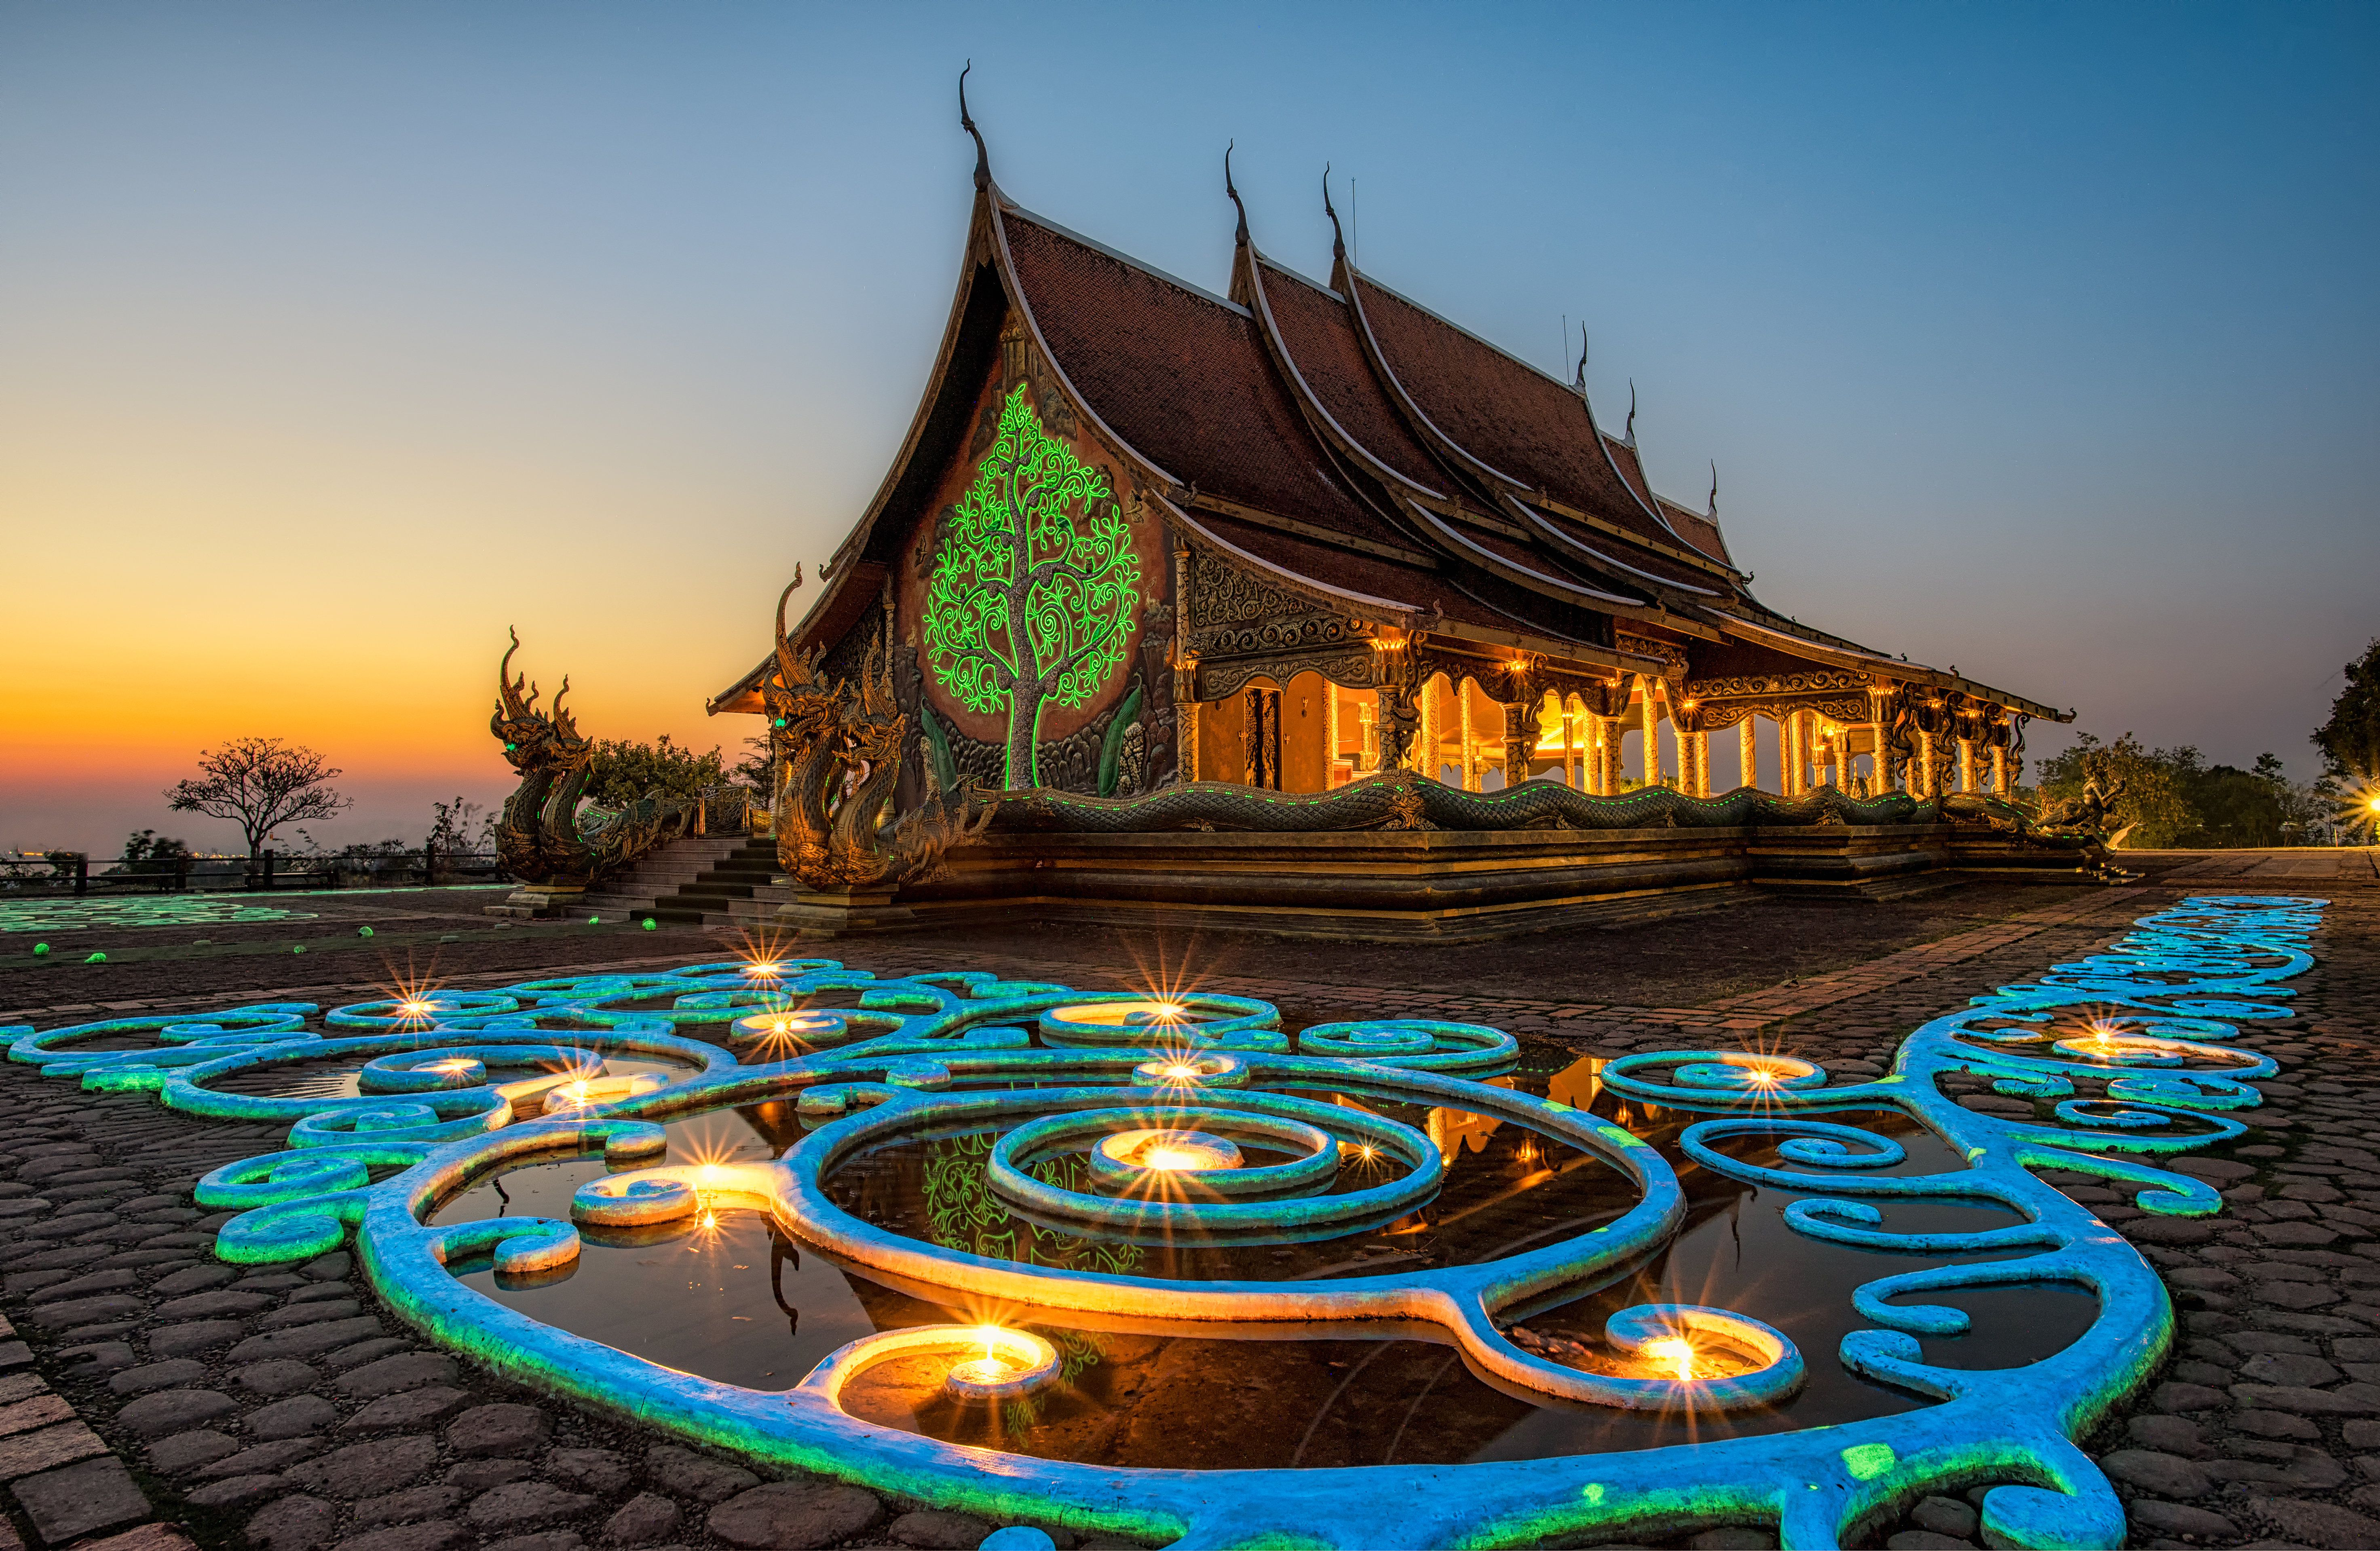 How to say hello in thai the wai thailand temple etiquette kristyandbryce Images